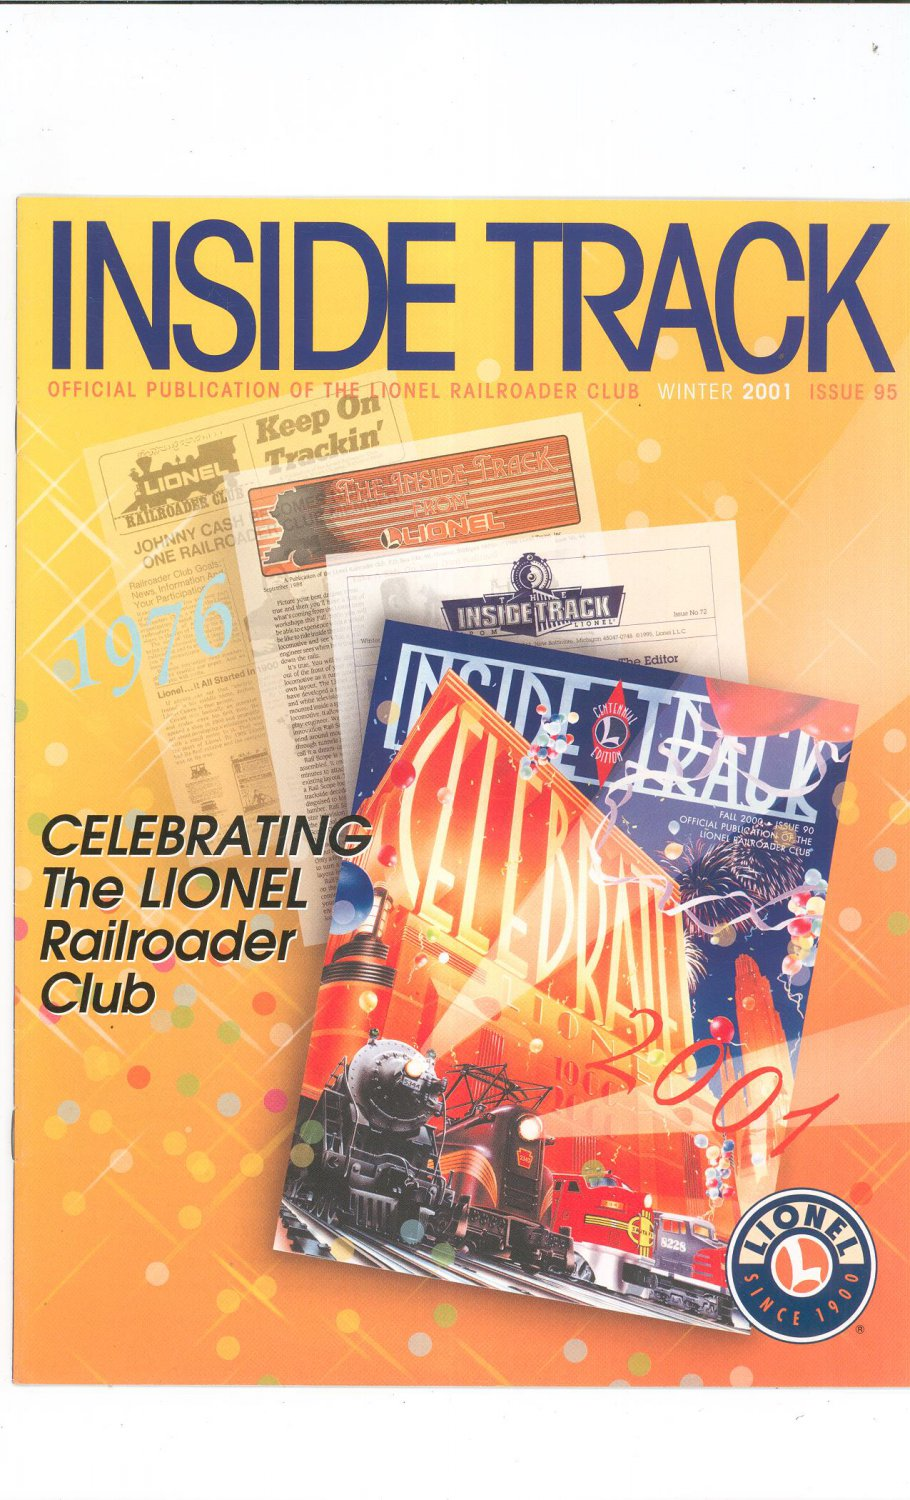 Lionel Railroader Club Inside Track Winter 2001 Issue 95 Not PDF Train Free Shipping Offer